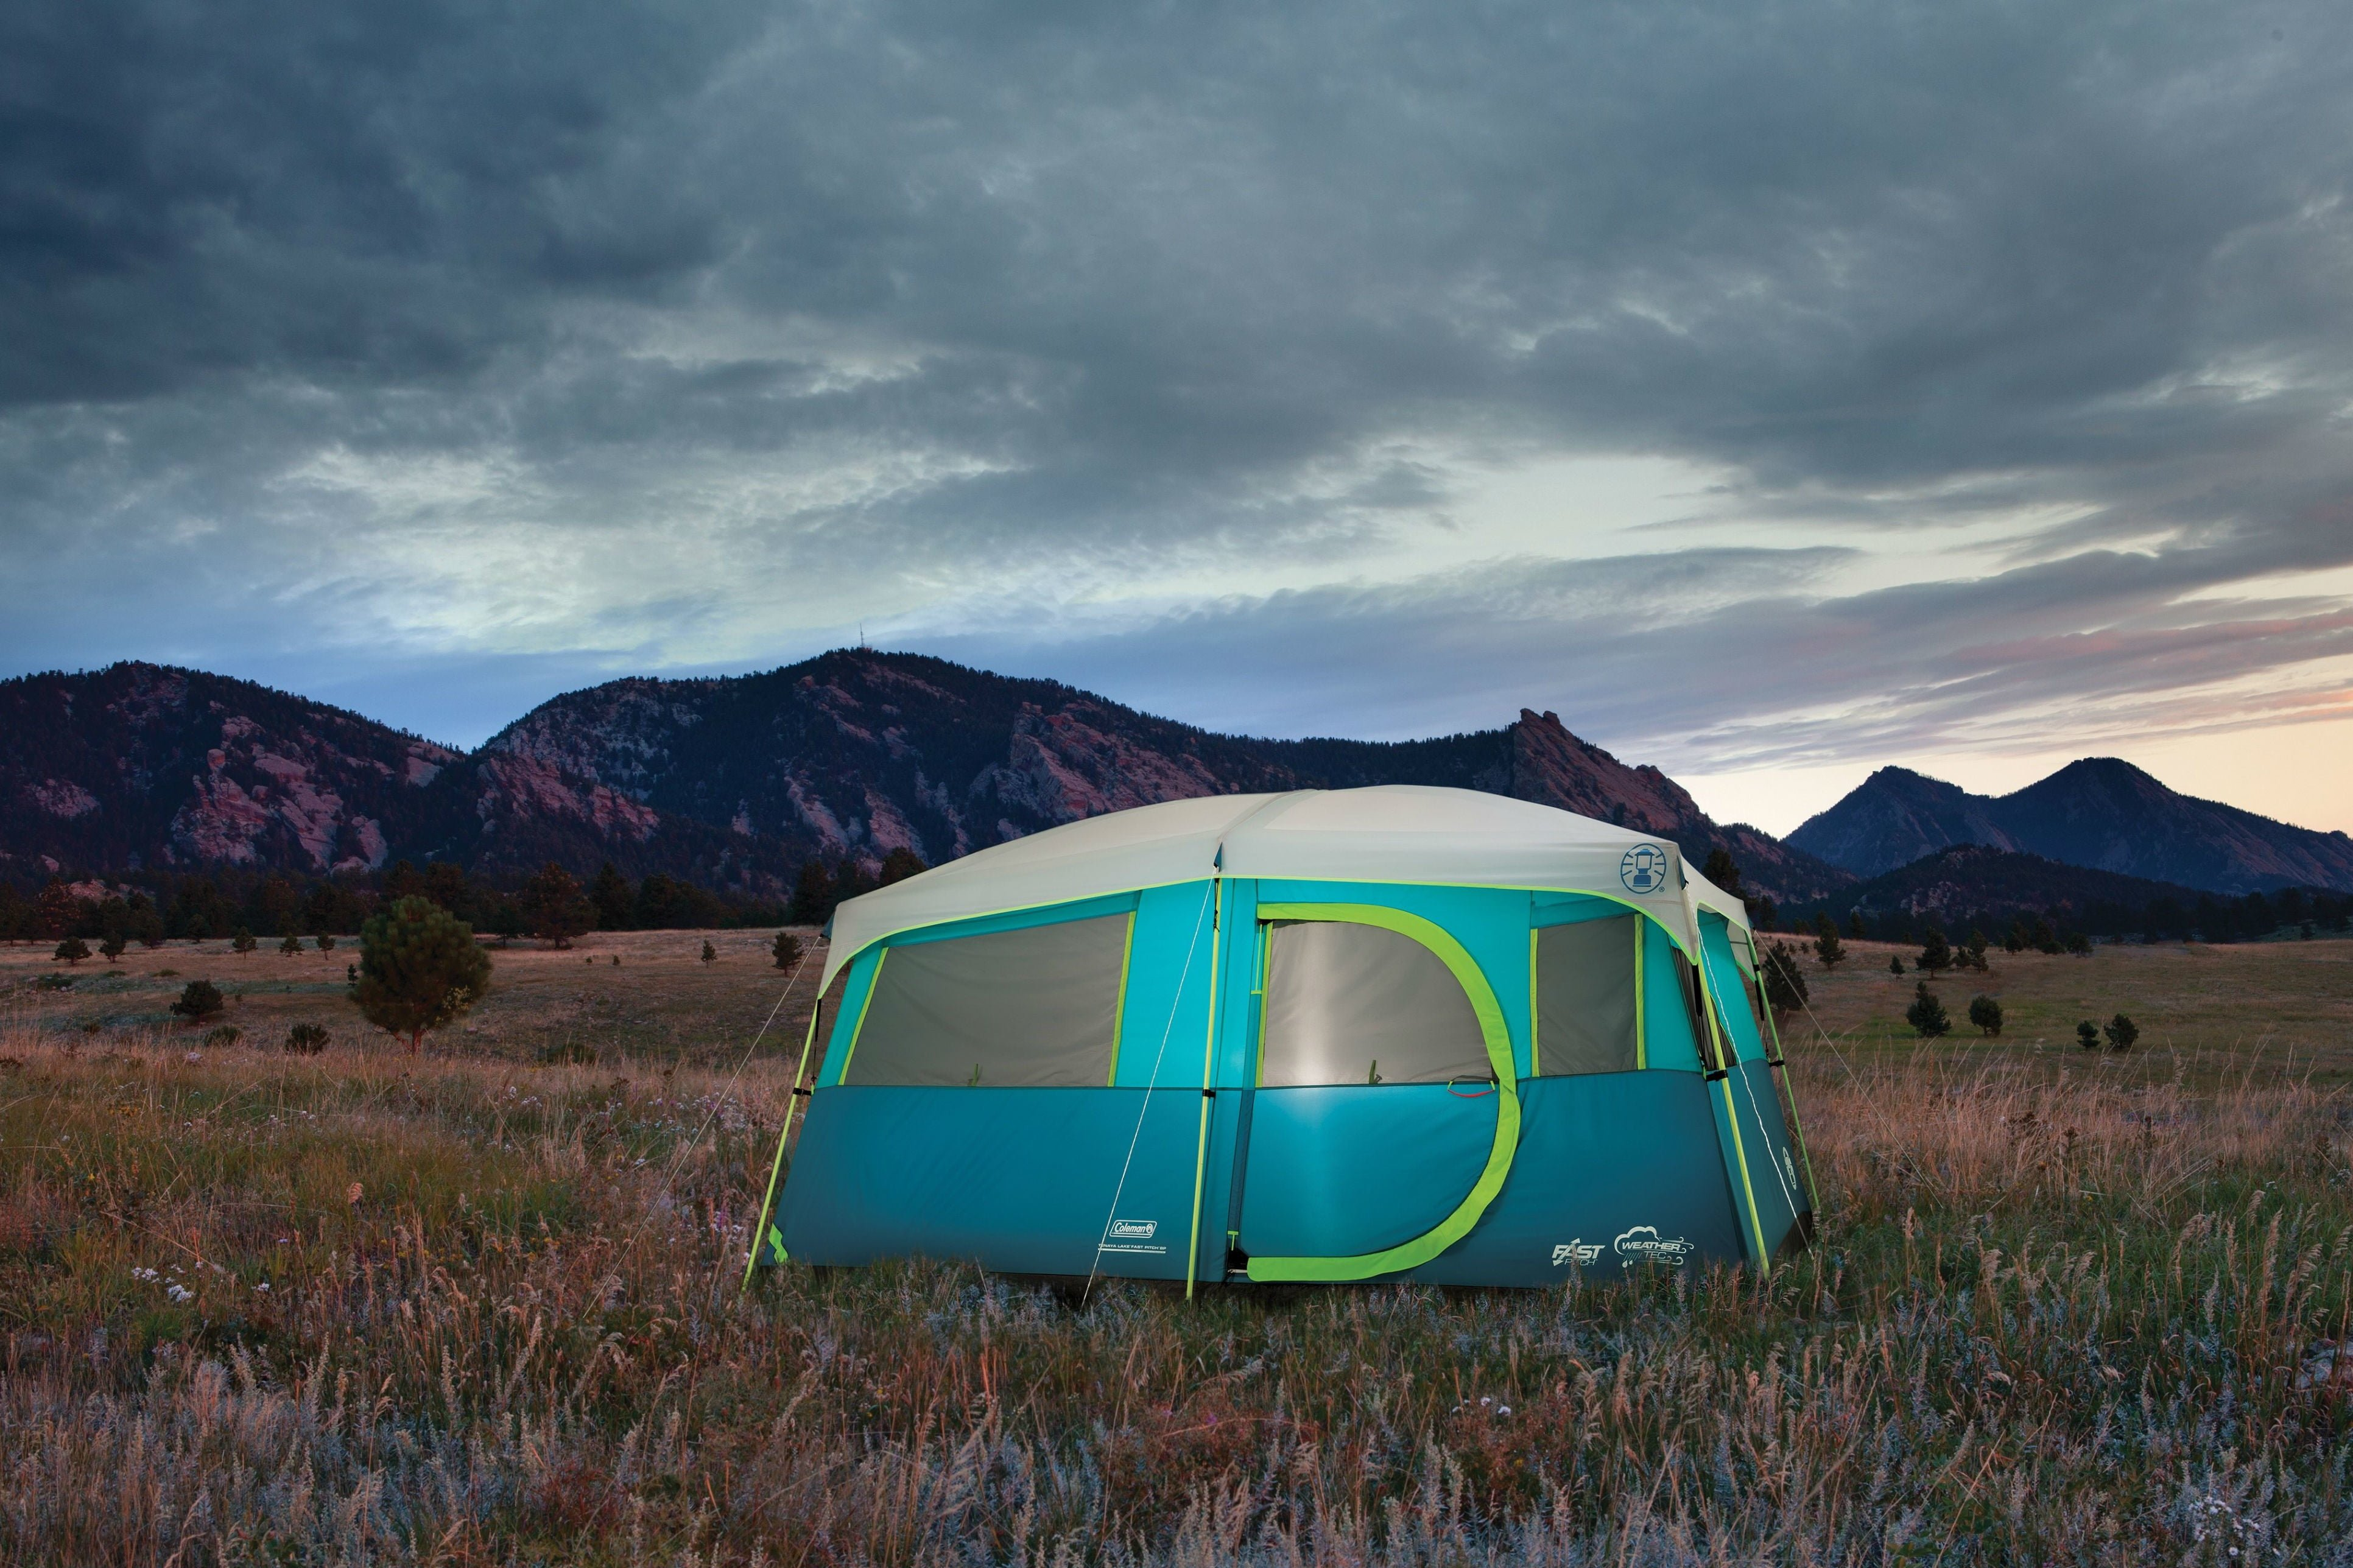 hinged door camping tents